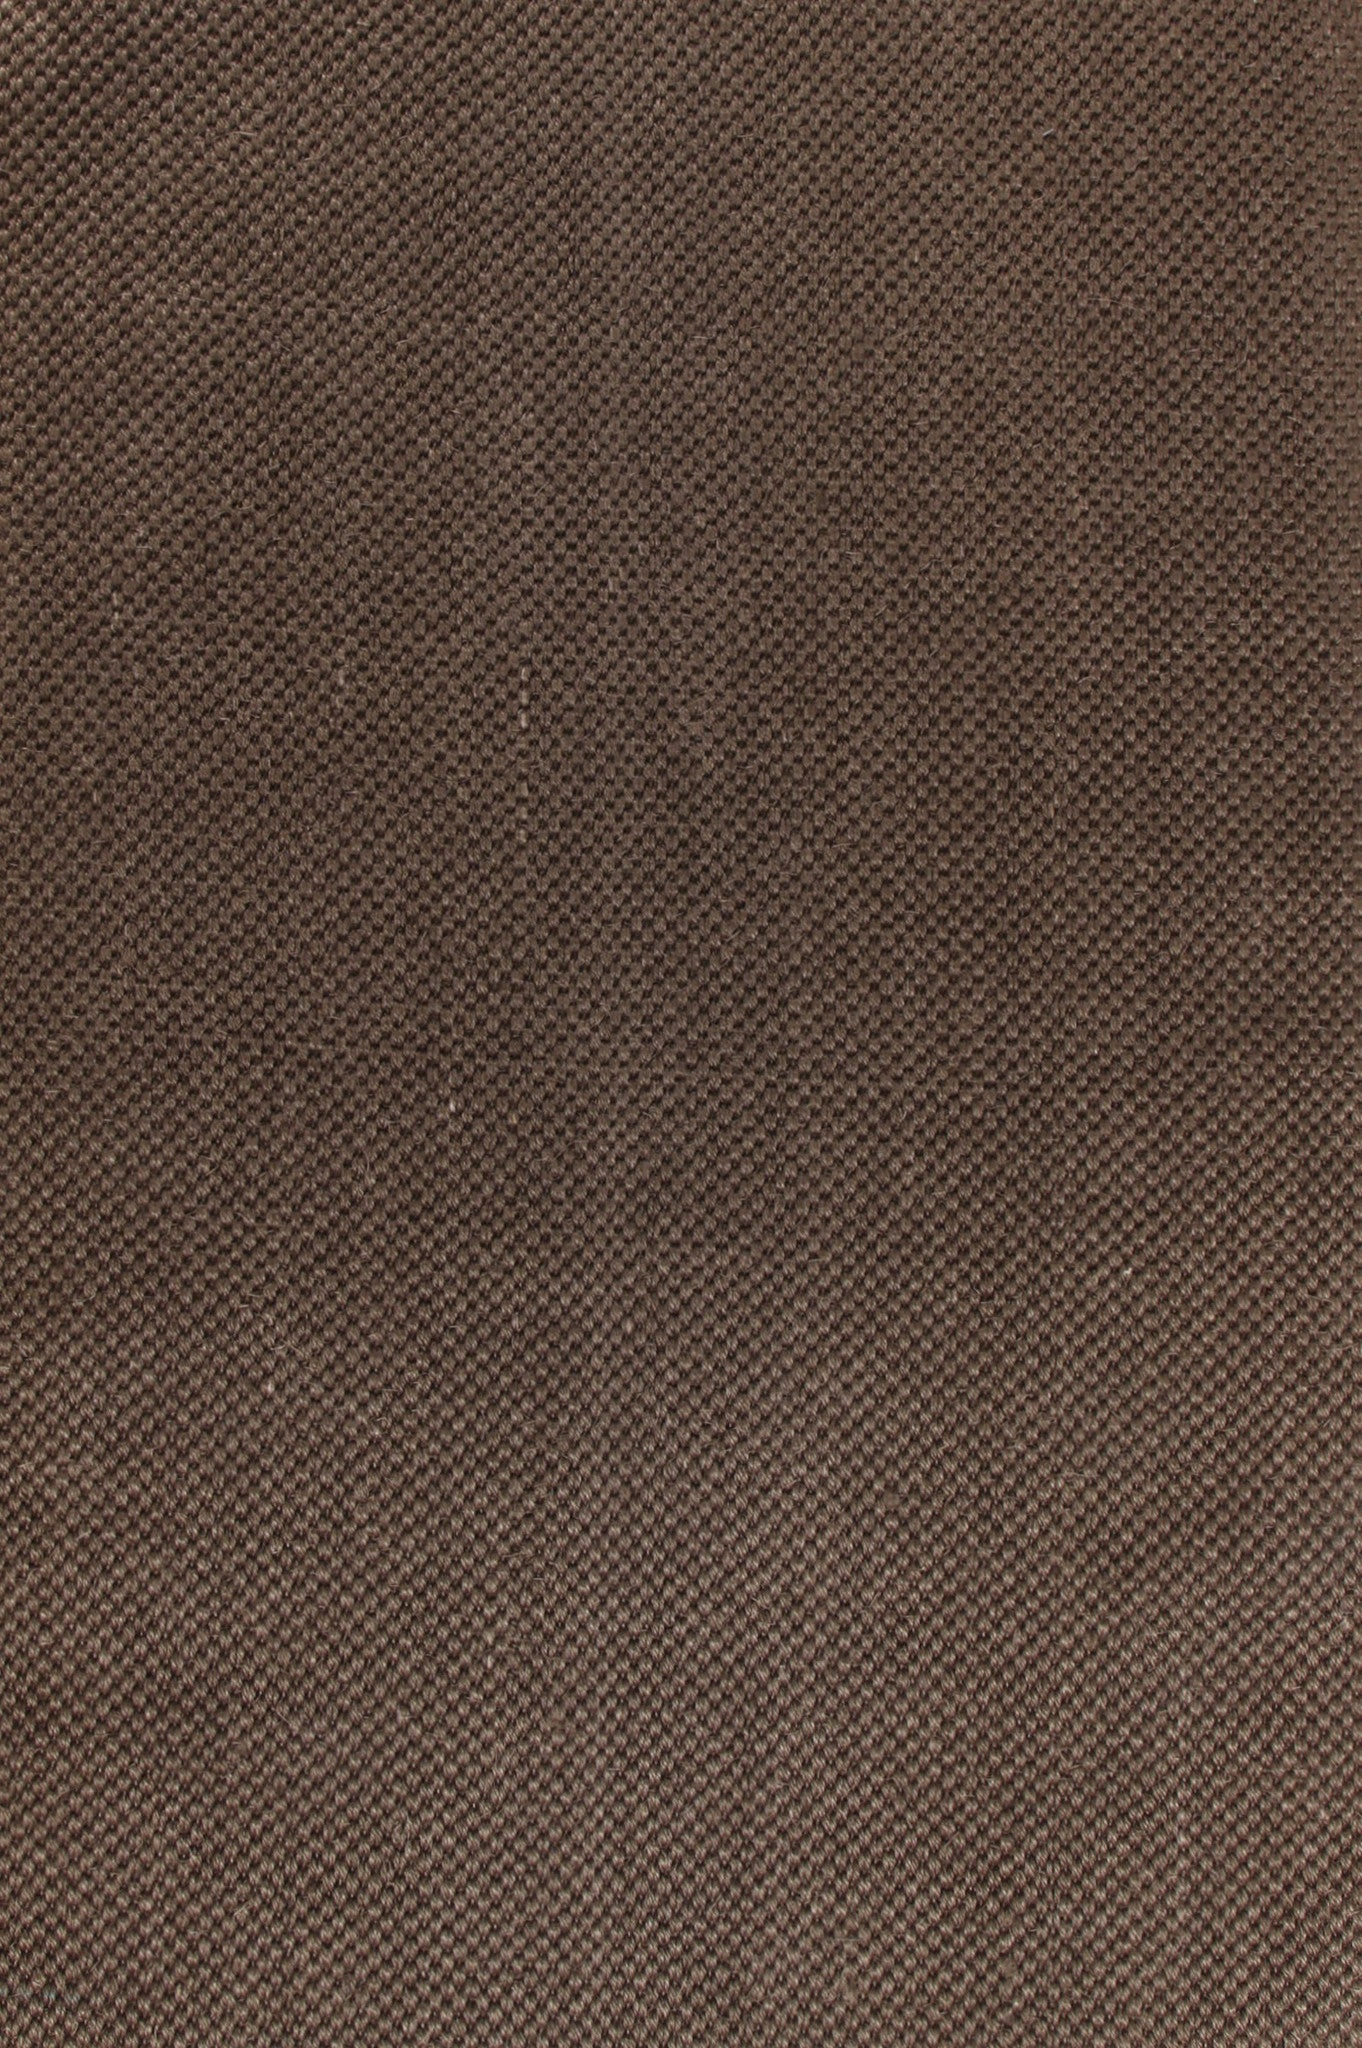 Eco Sisal Rug Tiger Eye - Brown